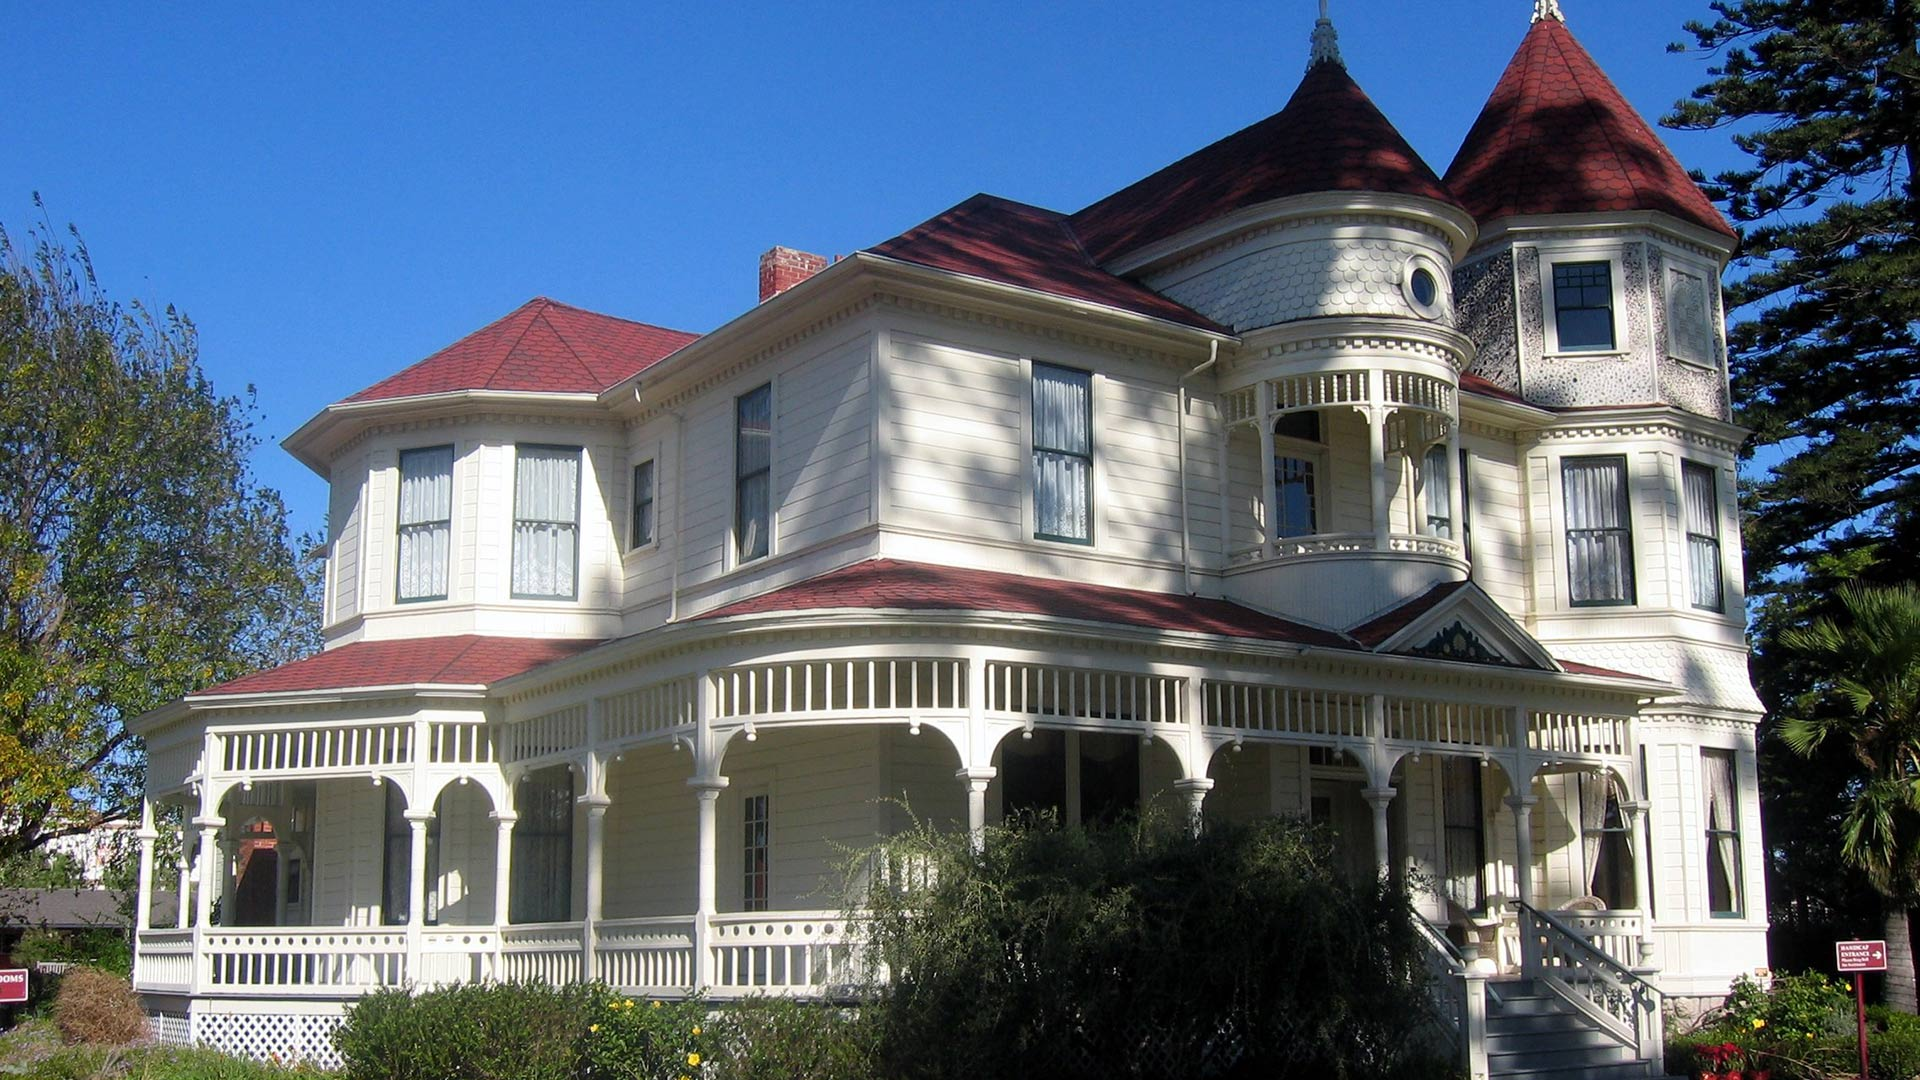 A full view of the Camarillo House.